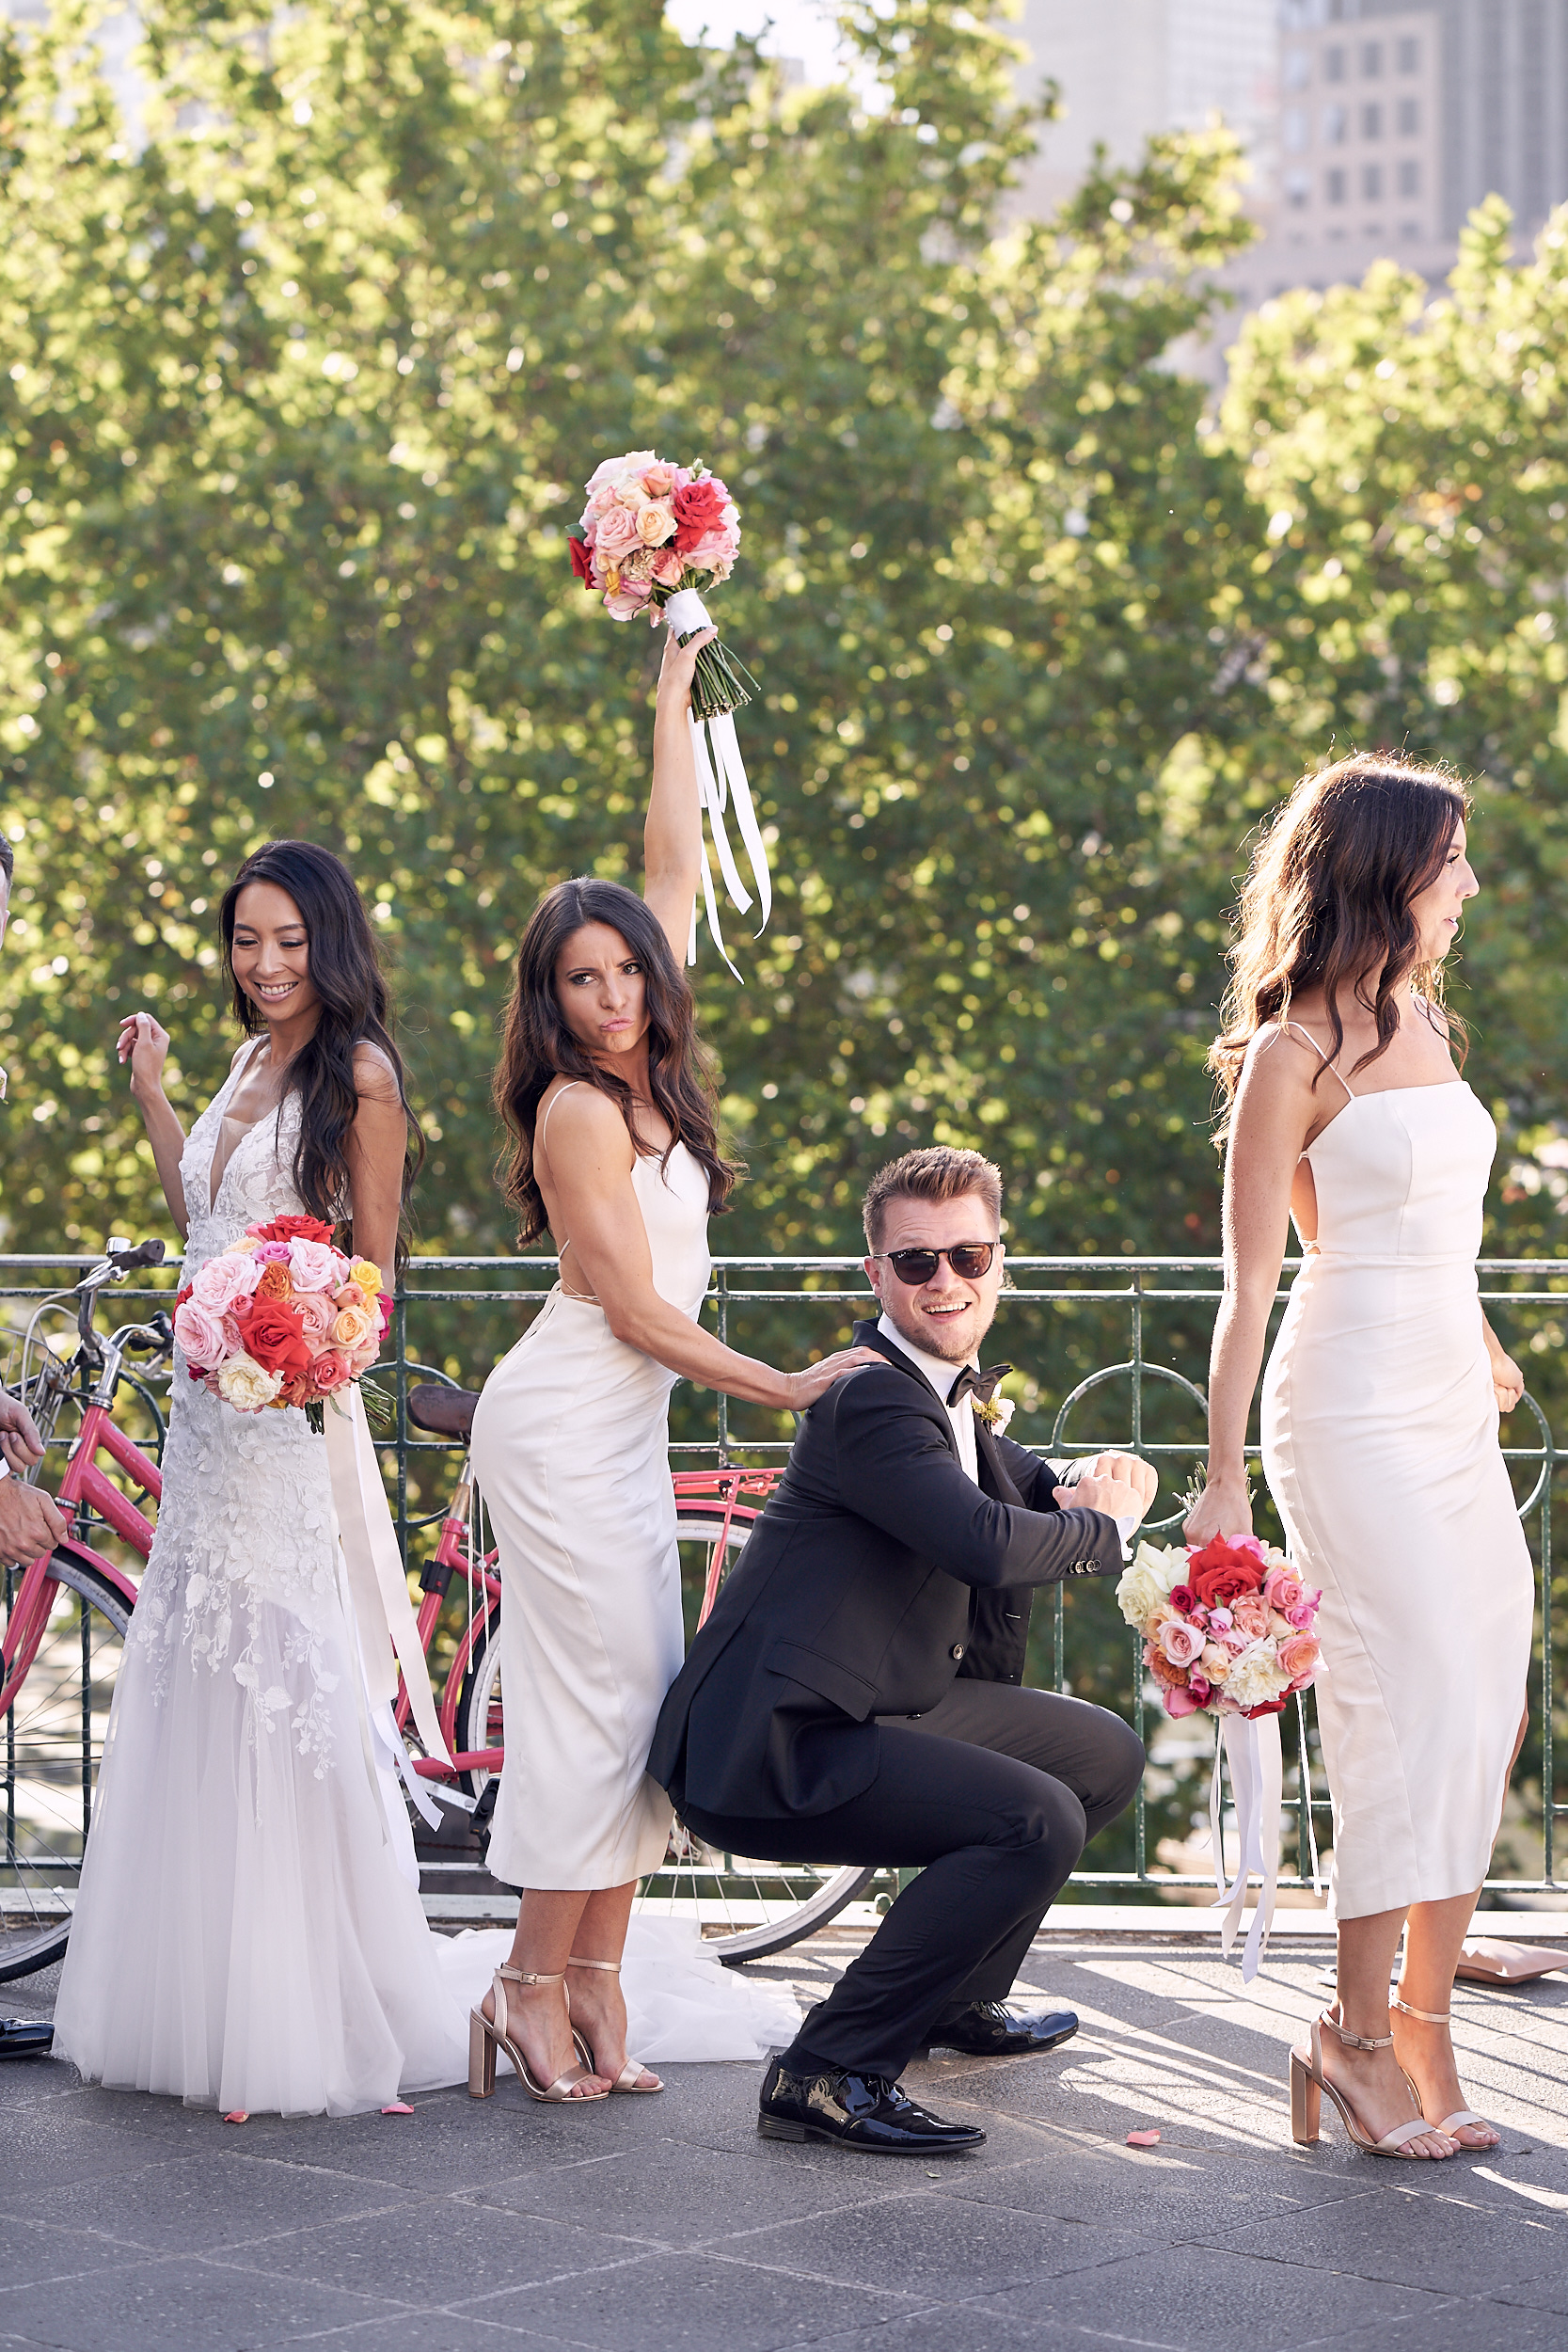 Melbourne Metropolis wedding bridal party photo by lost in love photography